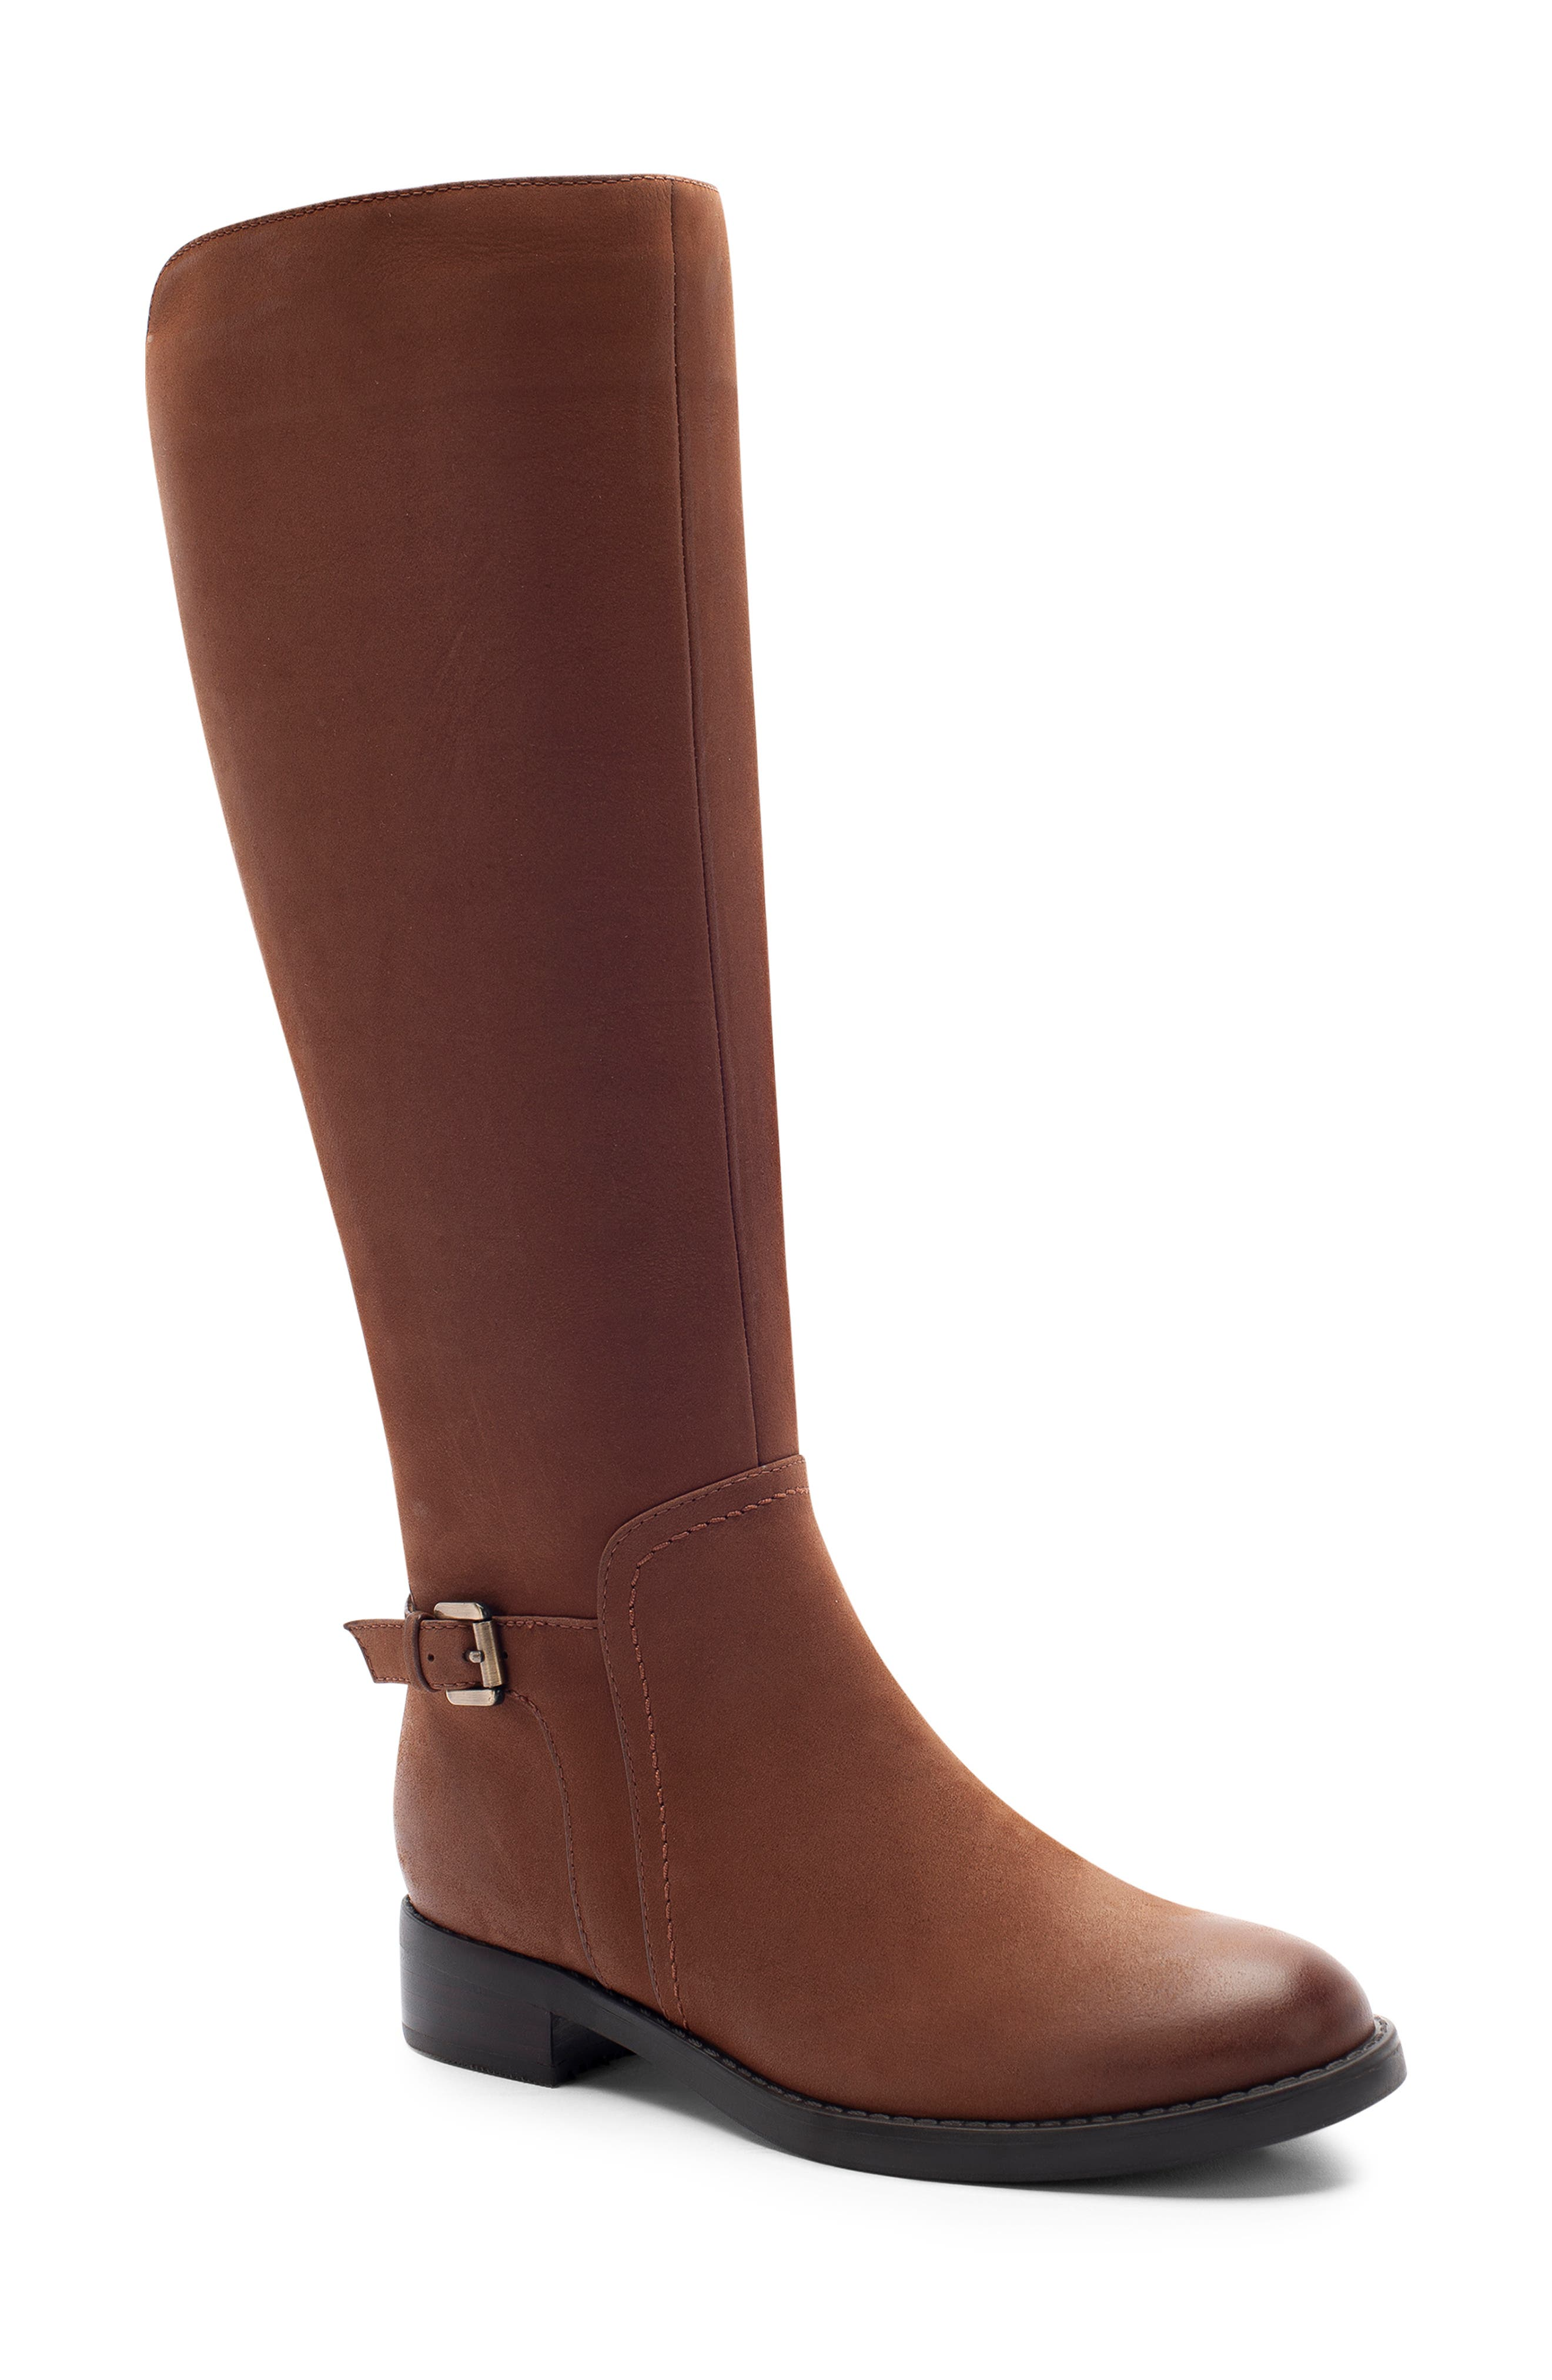 Blondo Evie Riding Waterproof Boot- Brown